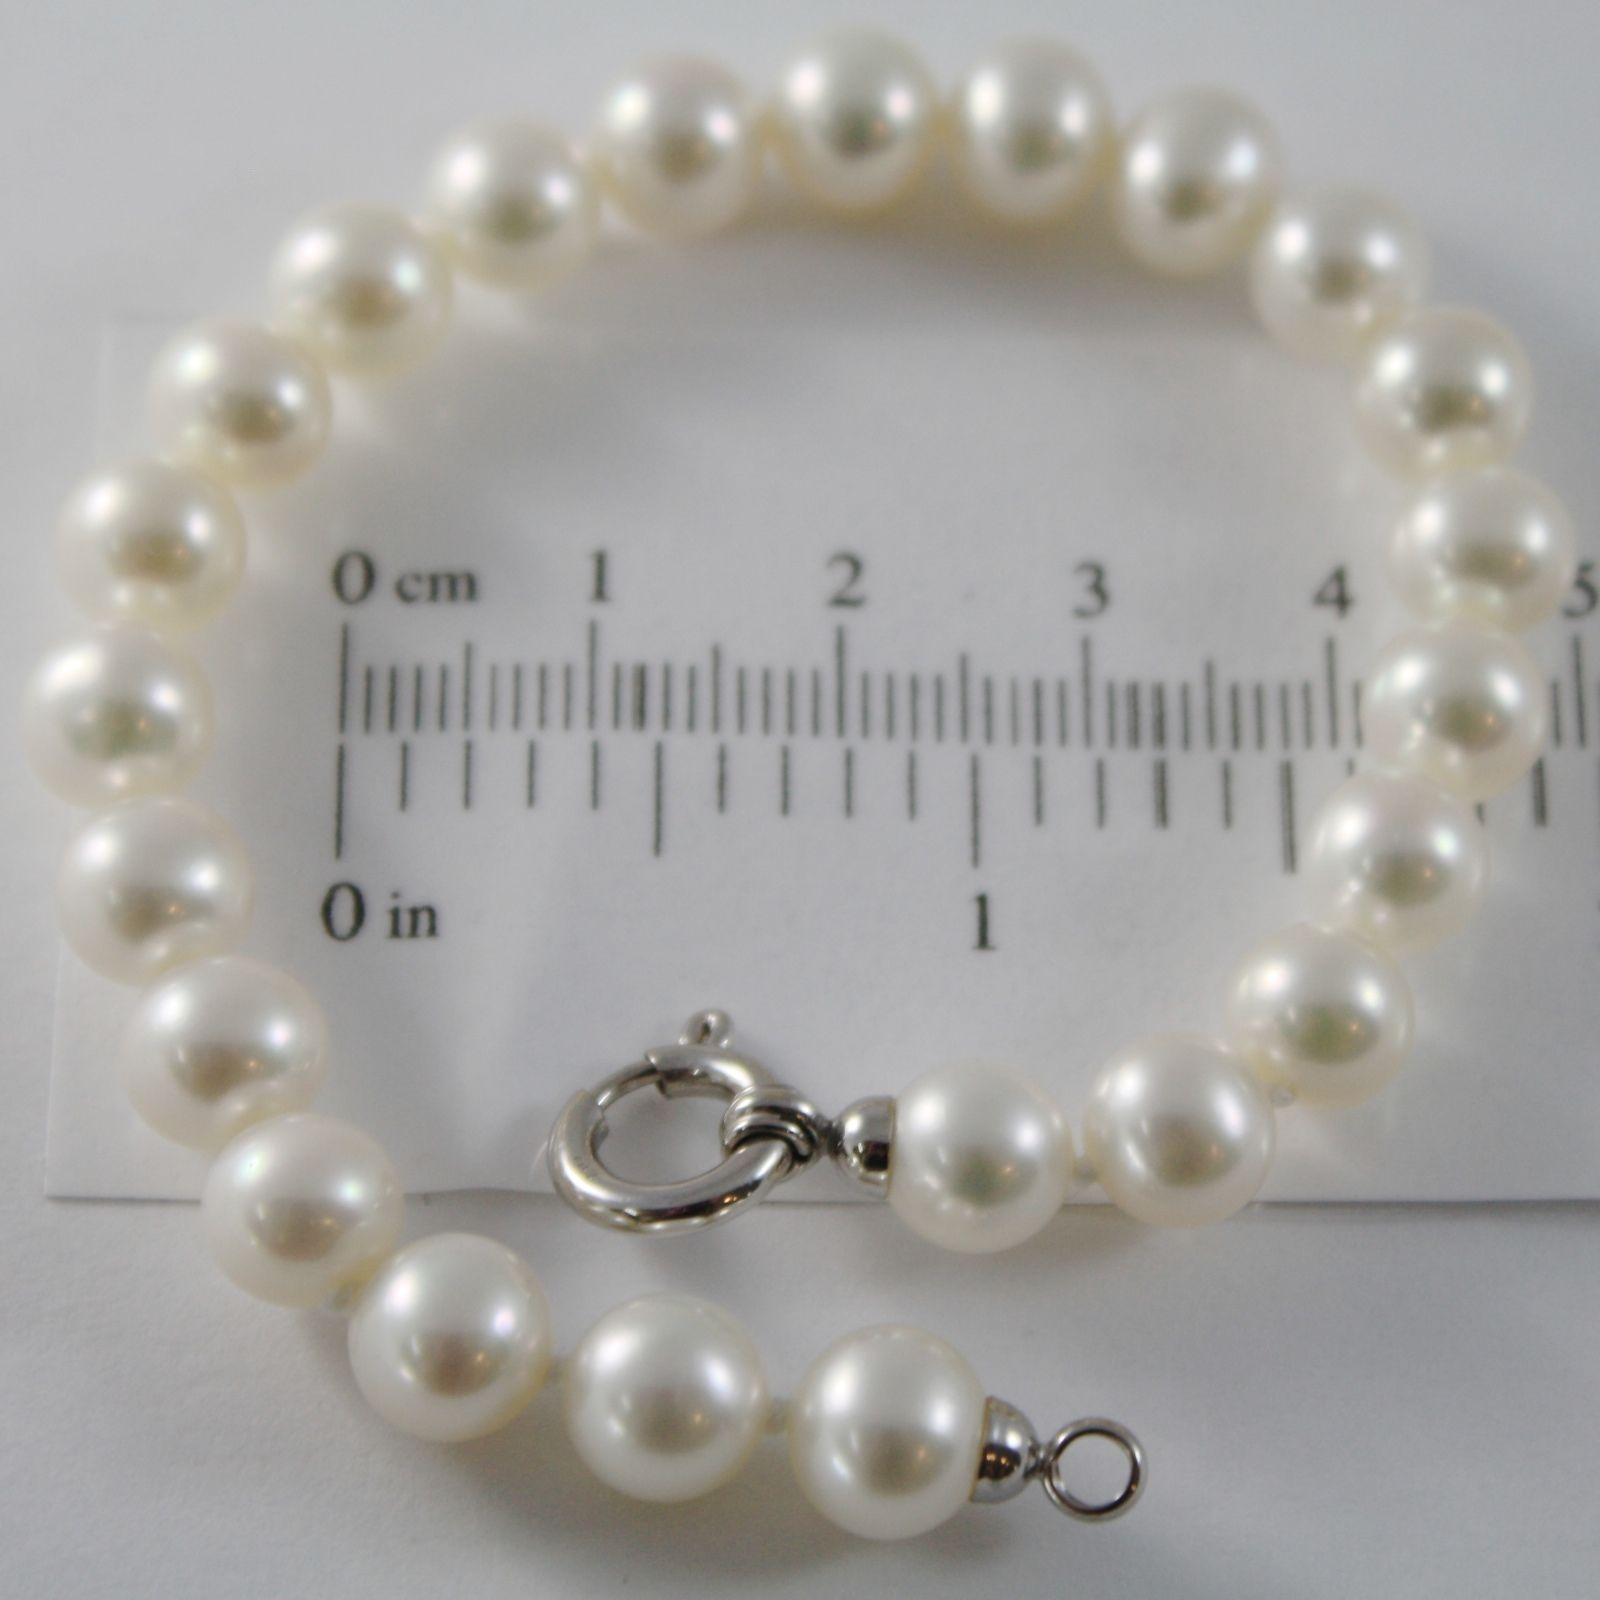 18K WHITE GOLD BRACELET 7.5 INCHES WITH WHITE 8 MM FW PEARLS, MADE IN ITALY